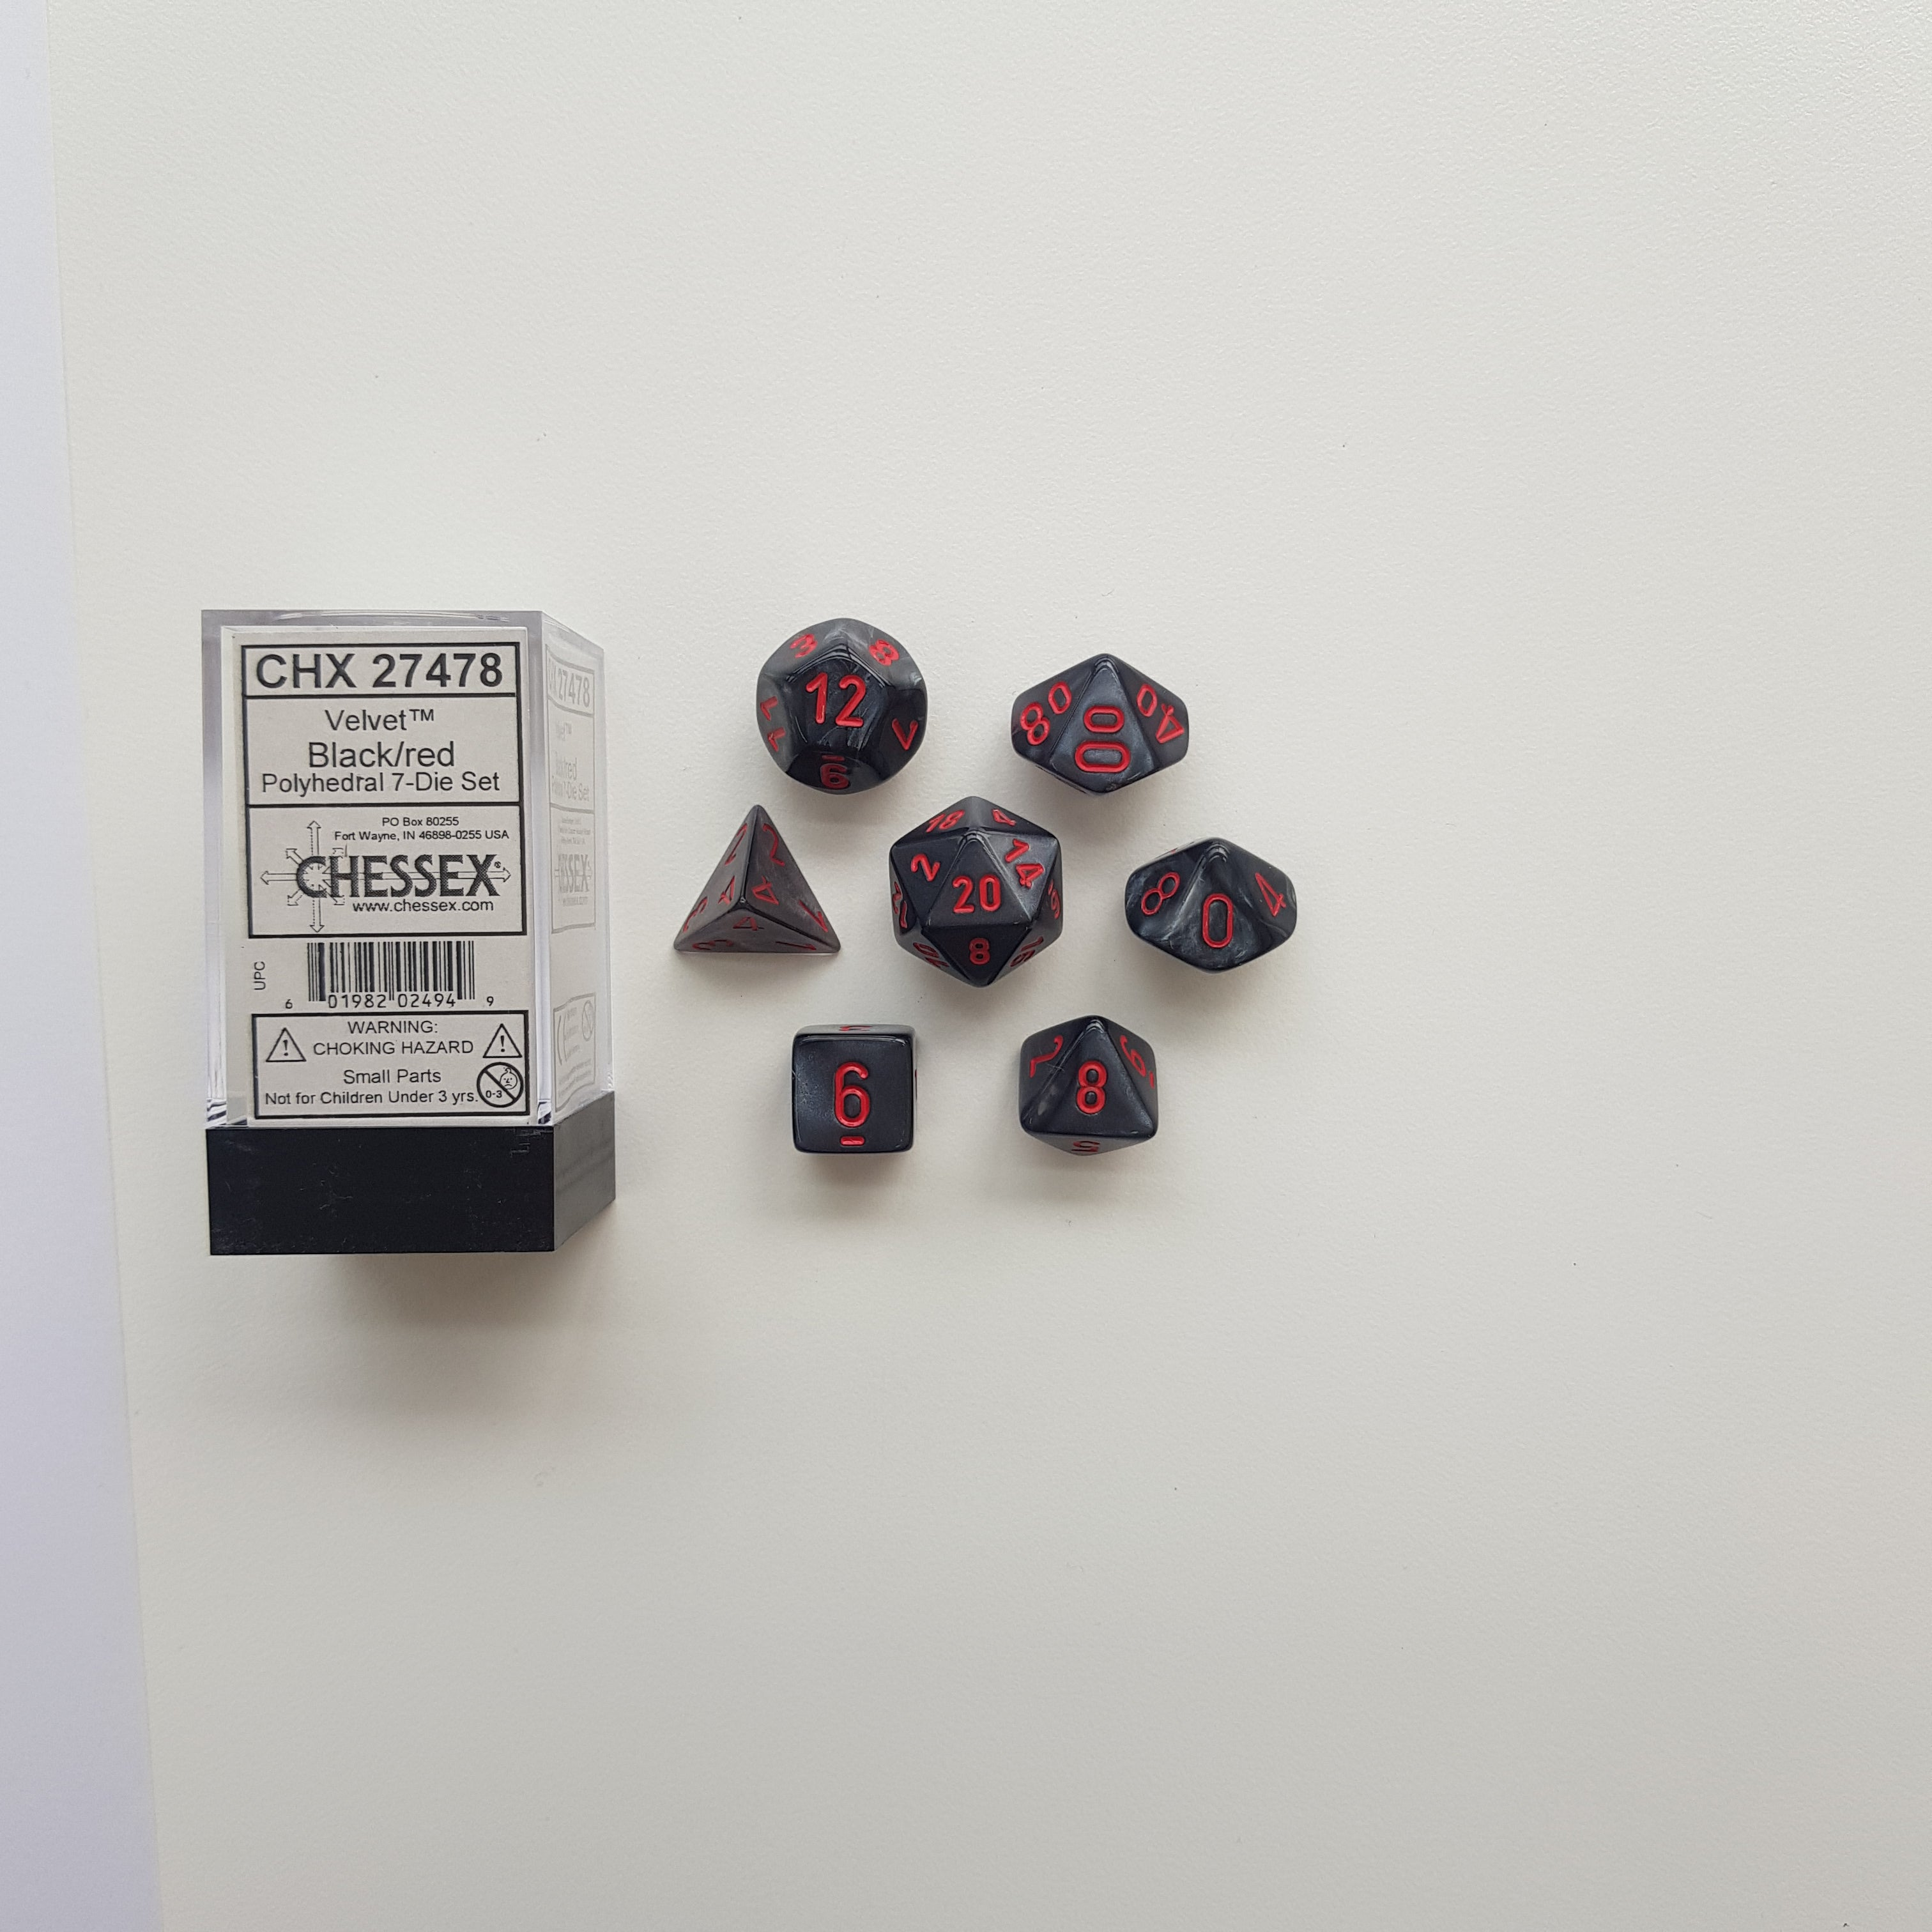 Chessex Black/Red Velvet Polyhedral Dice Set (CHX27478) | Sunny Pair'O'Dice